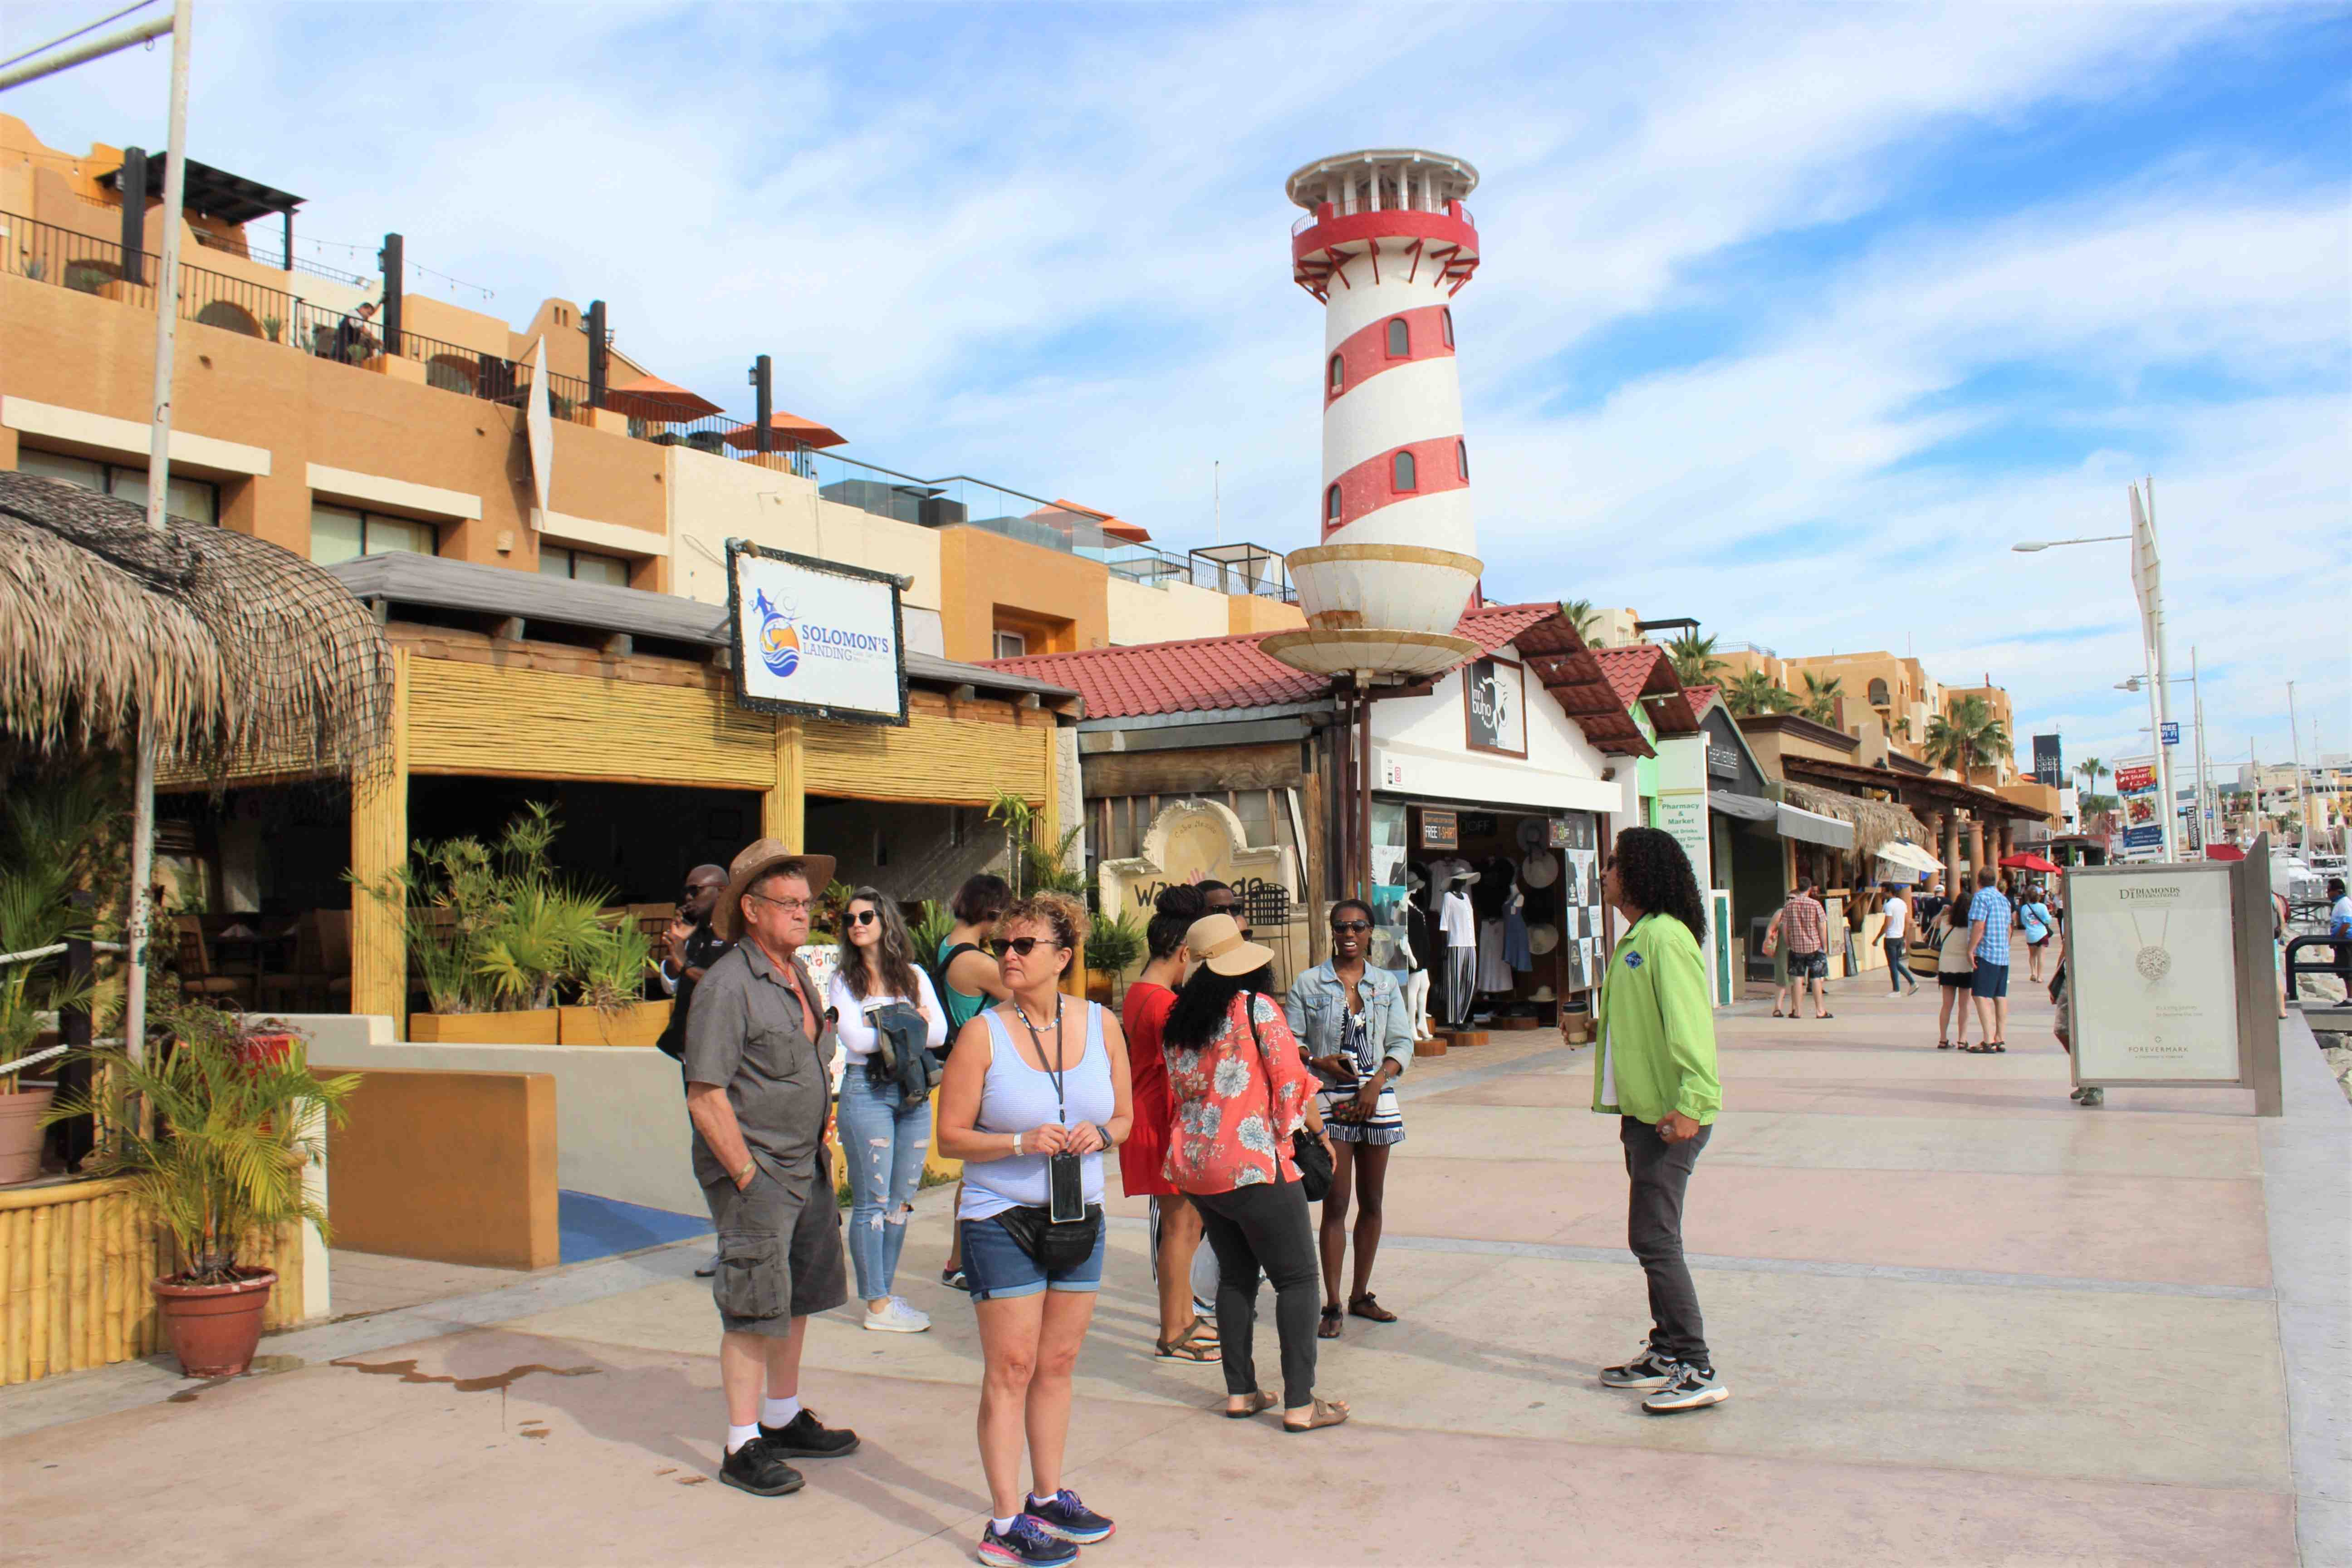 Los Cabos Deluxe City Tour - Last Minute Tours in Los Cabos